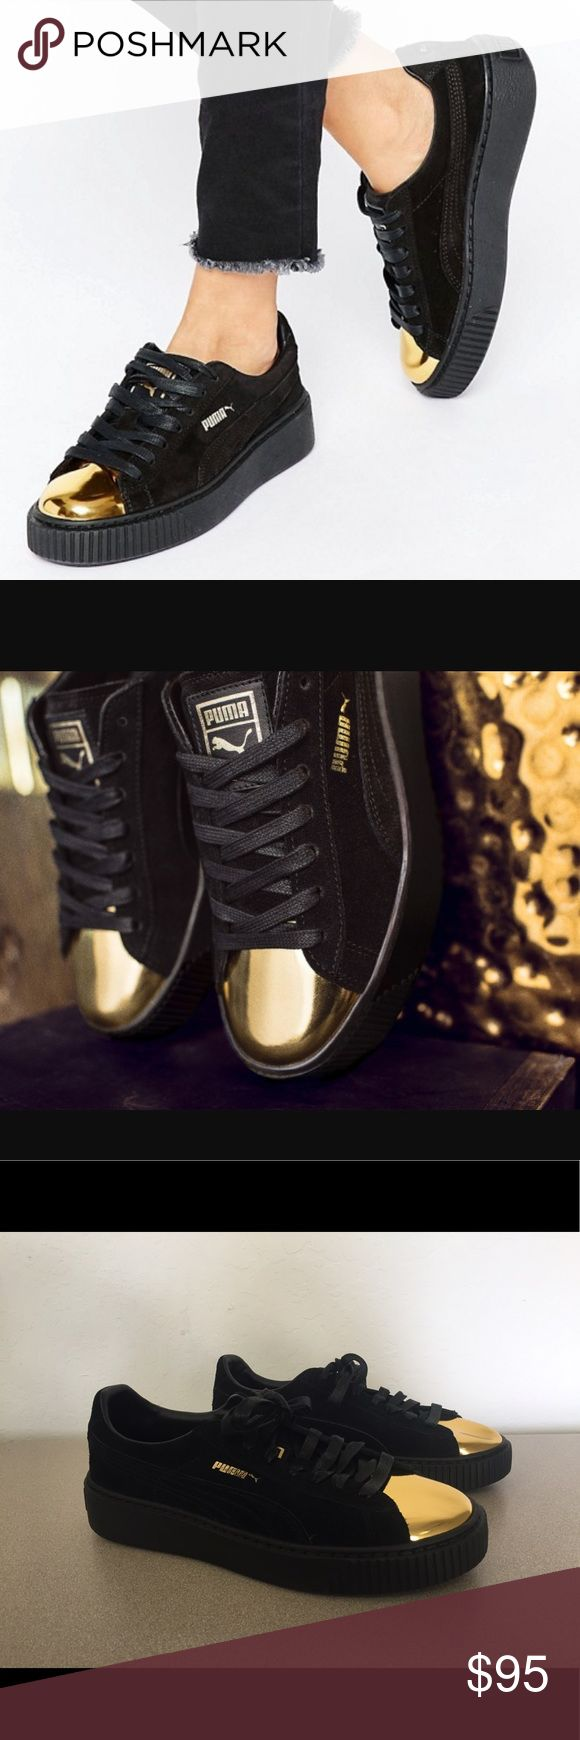 Puma Women's Suede Platform Gold Fashion Sneaker Brand : Puma  Style Code : 362222-02  Size : Women's 6.5  Color : Black/Gold  Material : Suede   BRAND NEW. NO BOX. NEVER WORN OR TRIED ON Puma Shoes Sneakers